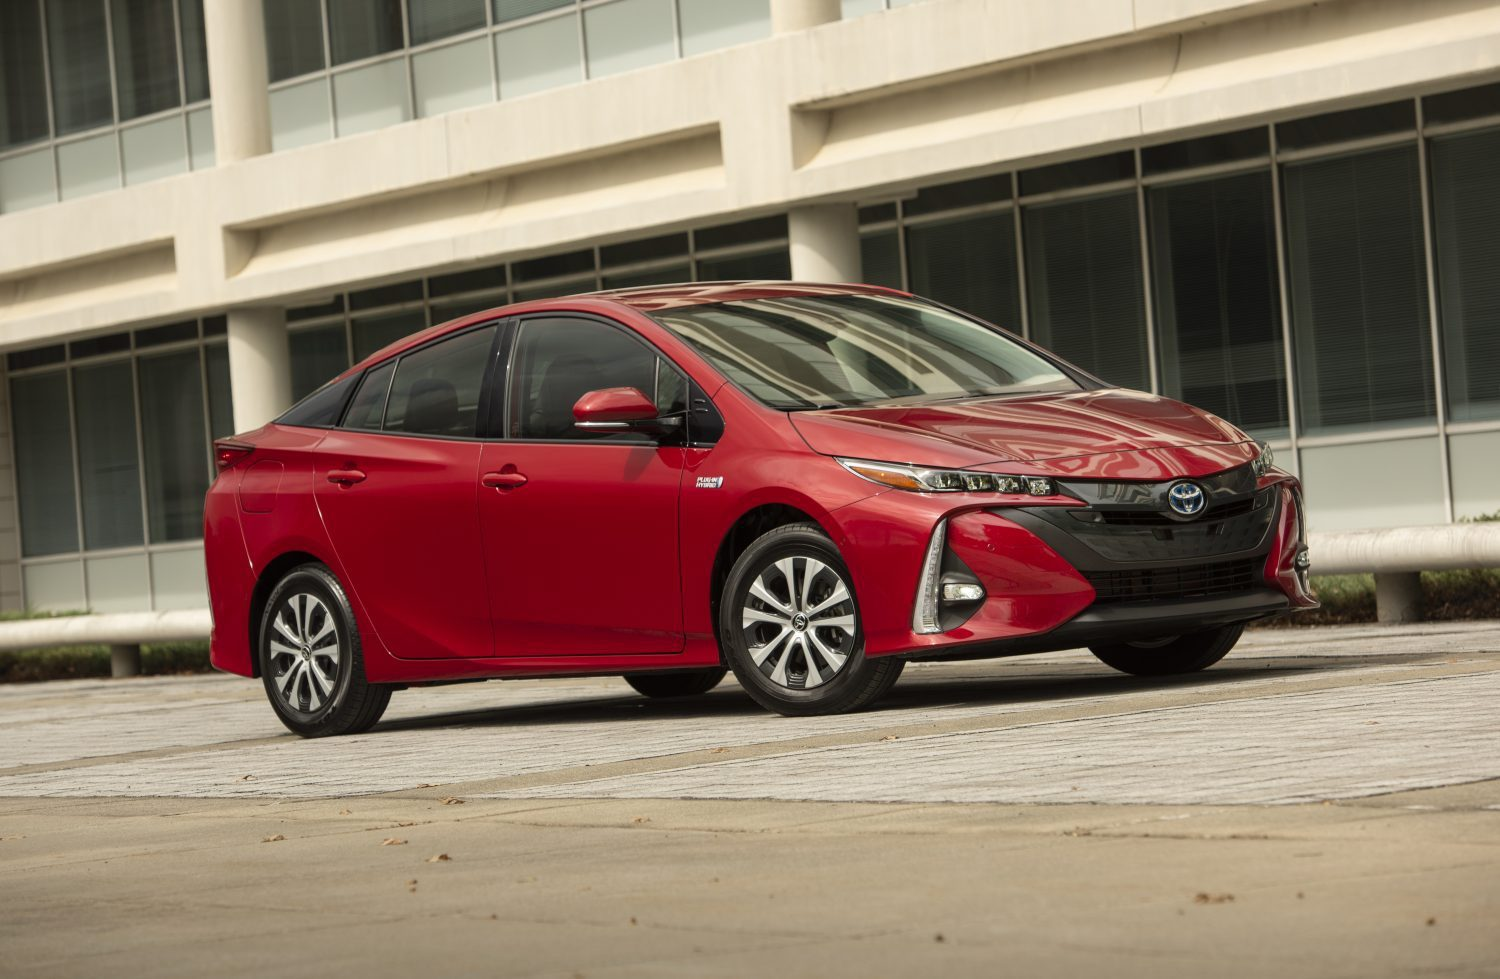 A view of a 2021 Red Toyota Prius Sedan